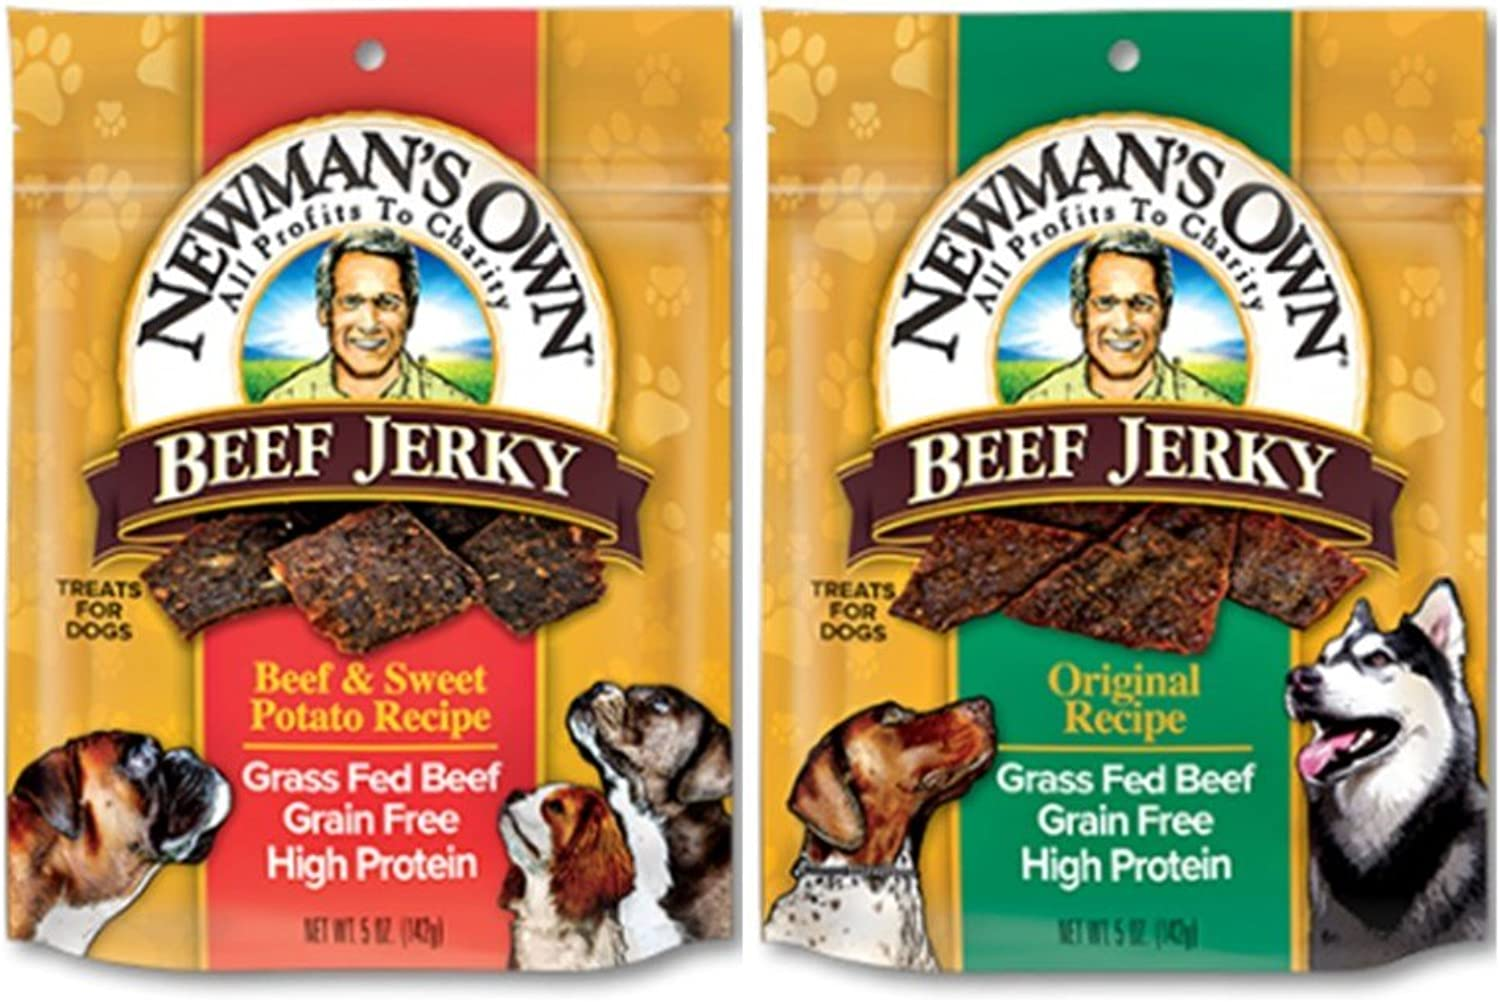 Newman's Own Grain Free Grass Fed Beef Jerky Dog Treats 2 Flavor Variety Bundle  (1) Original Recipe, and (1) Beef & Sweet Potato Recipe, 5 Oz. Ea. (2 Bags Total)